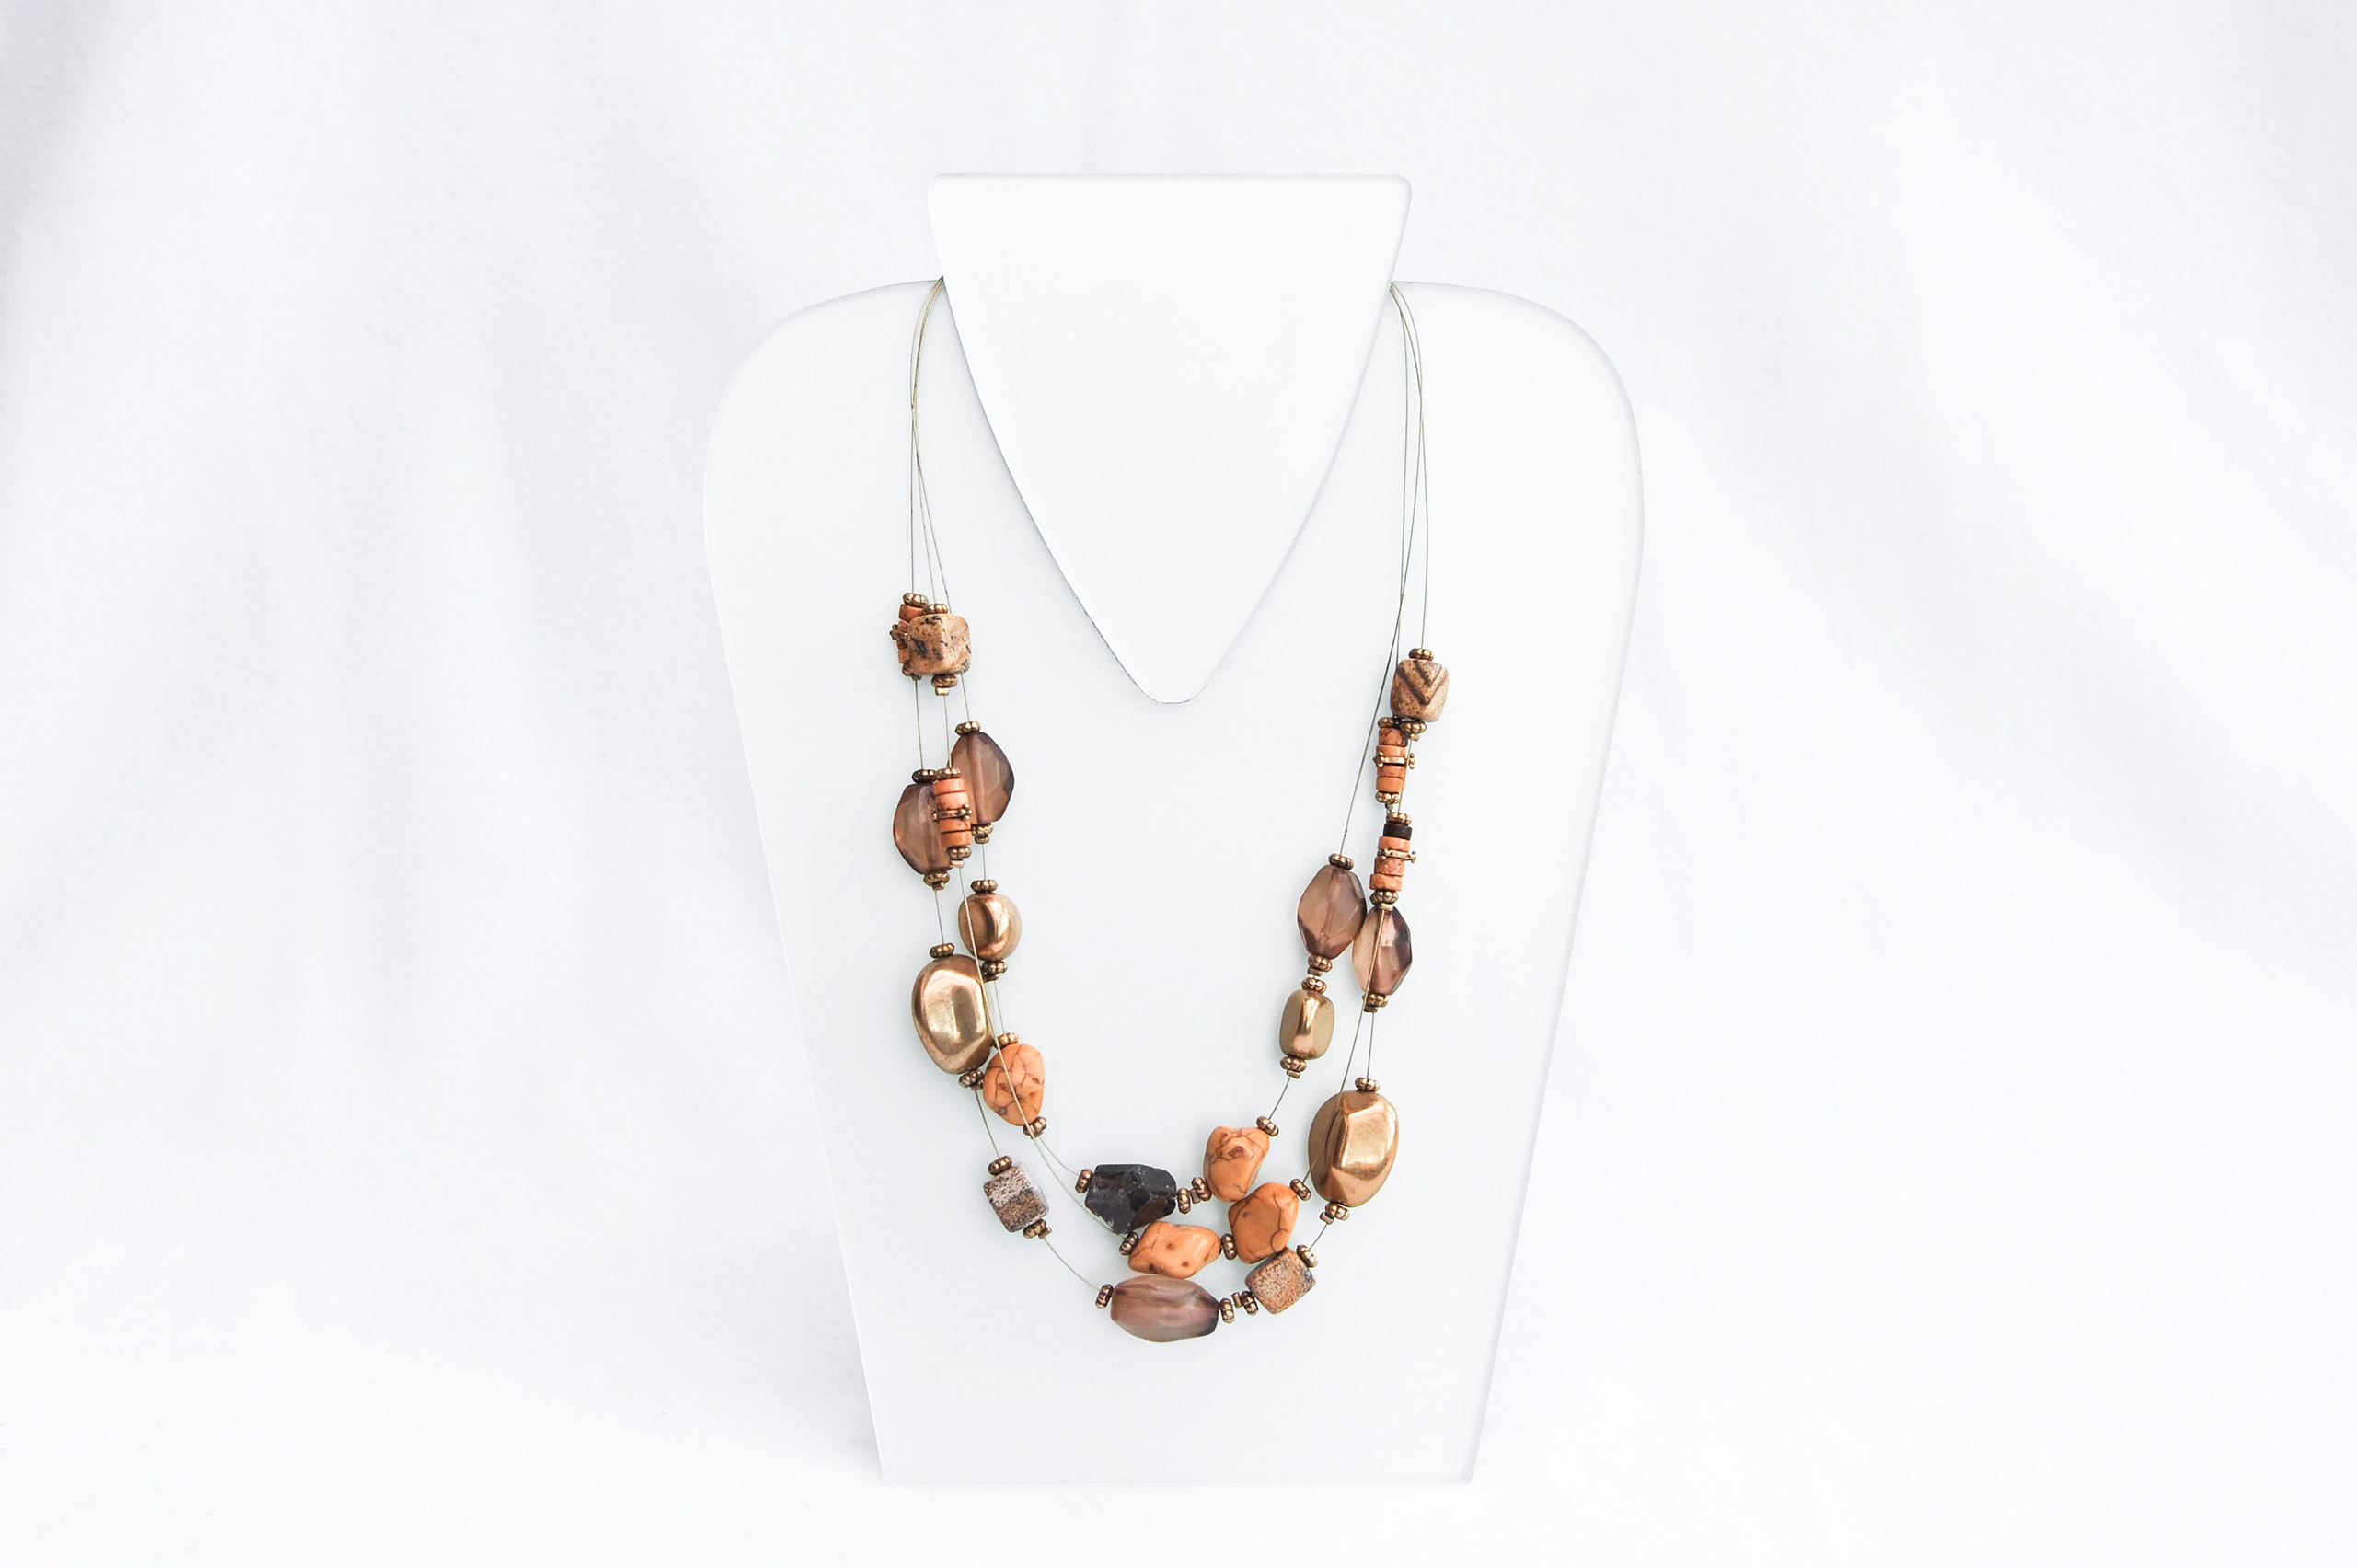 Threerow necklace with pearls and natural stones. Design Providence Rhode Island USA